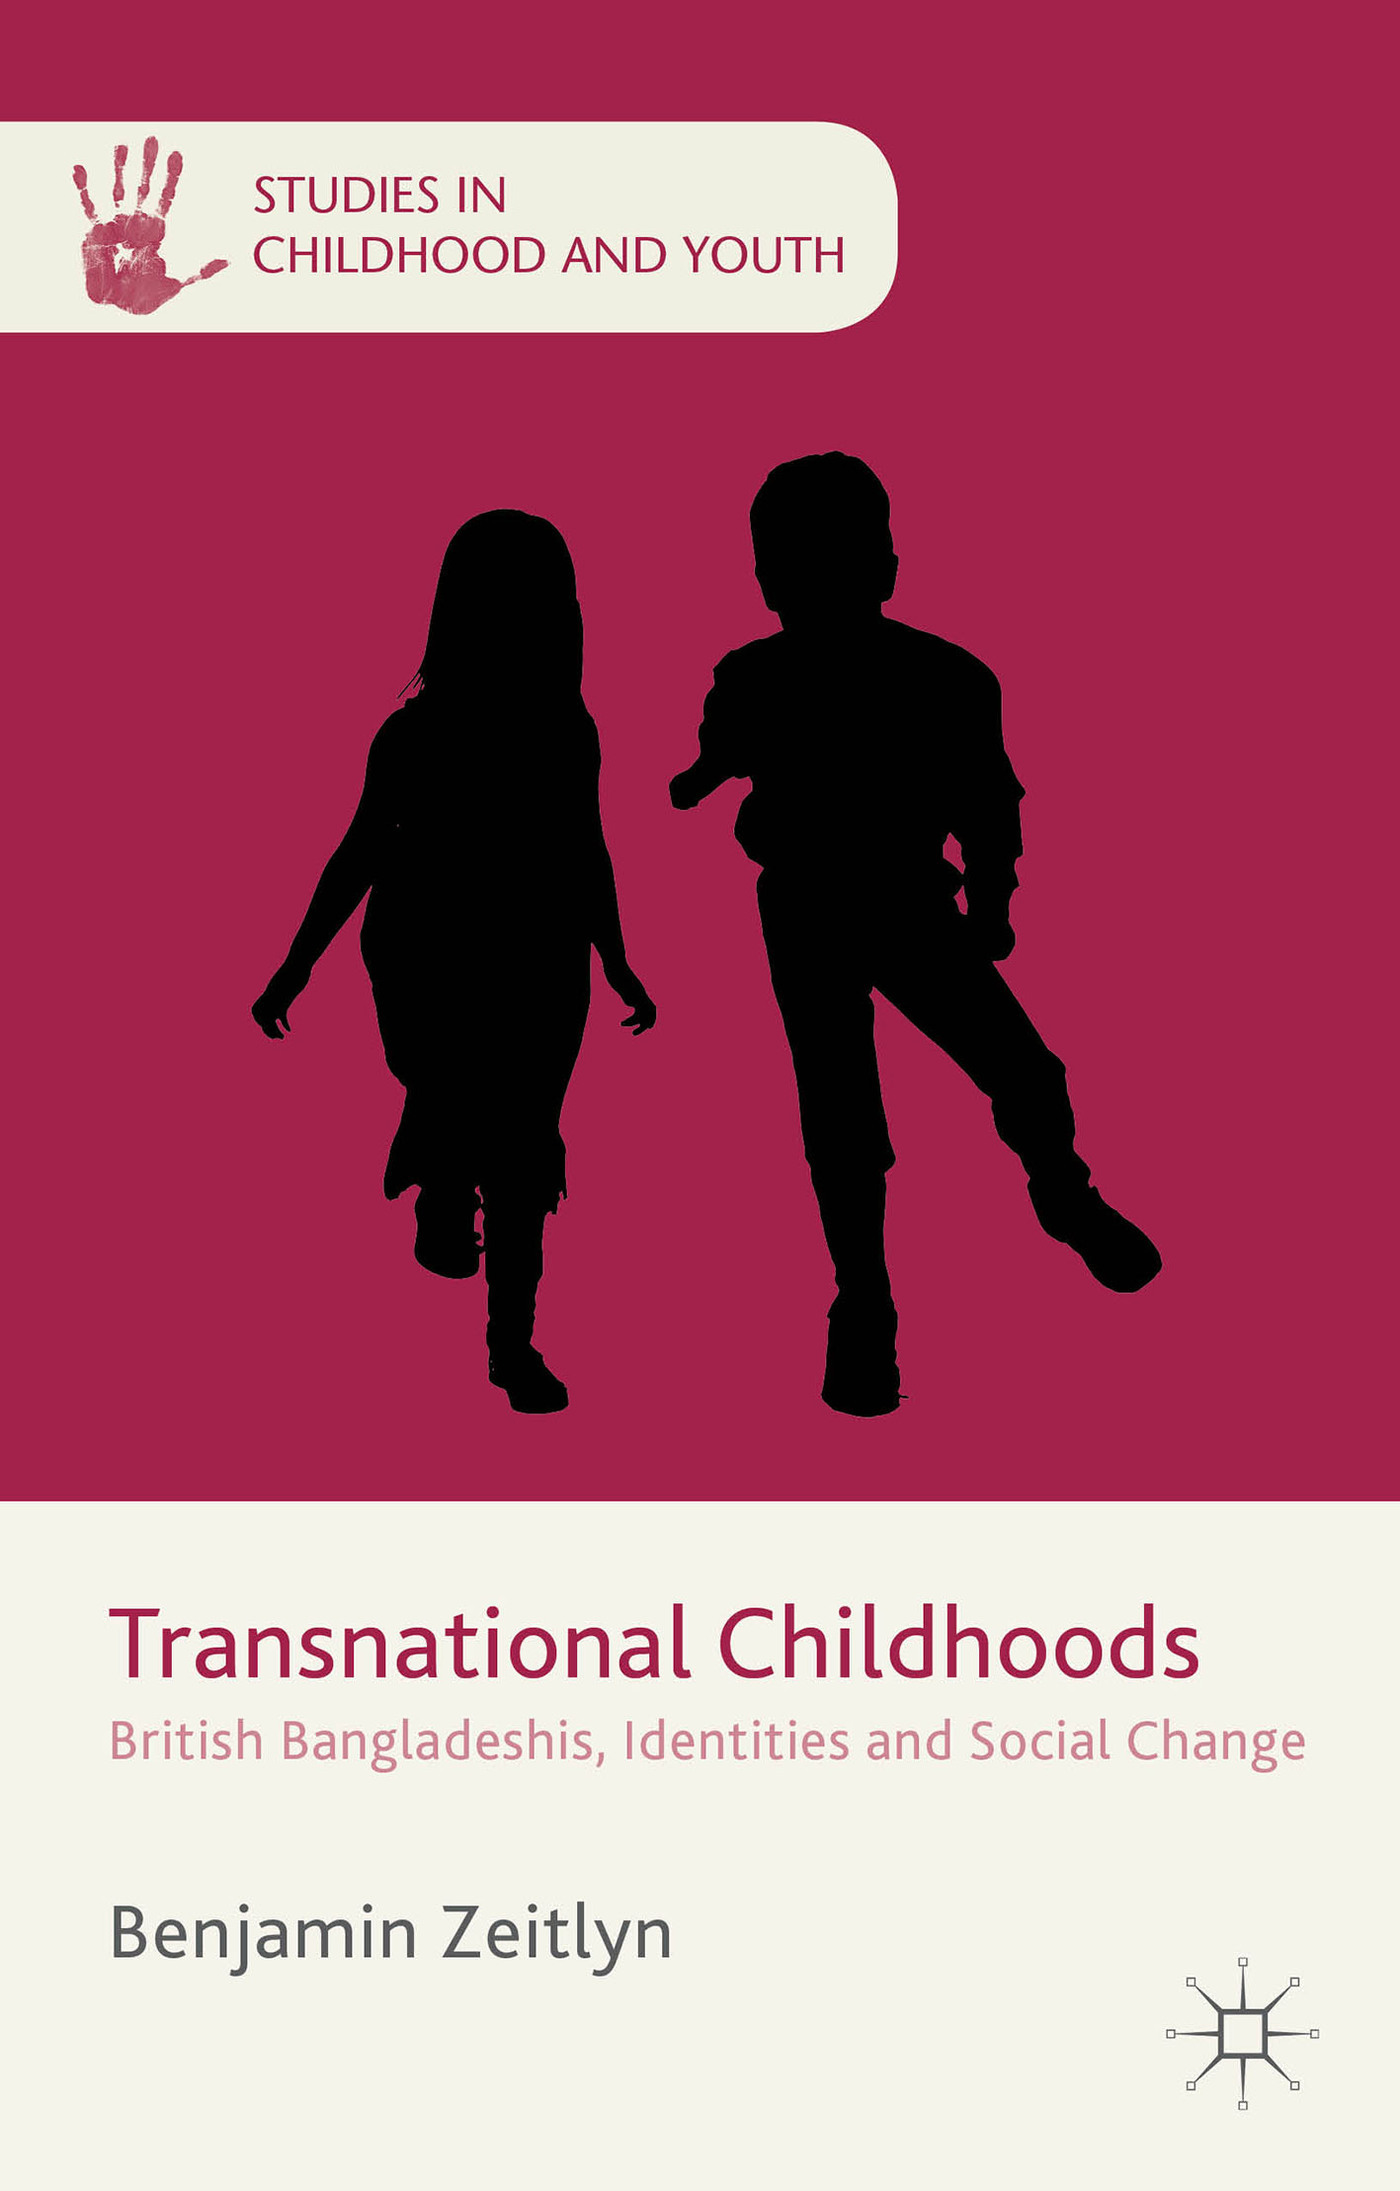 Transnational Childhoods: British Bangladeshis, Identities and Social Change Benjamin Zeitlyn